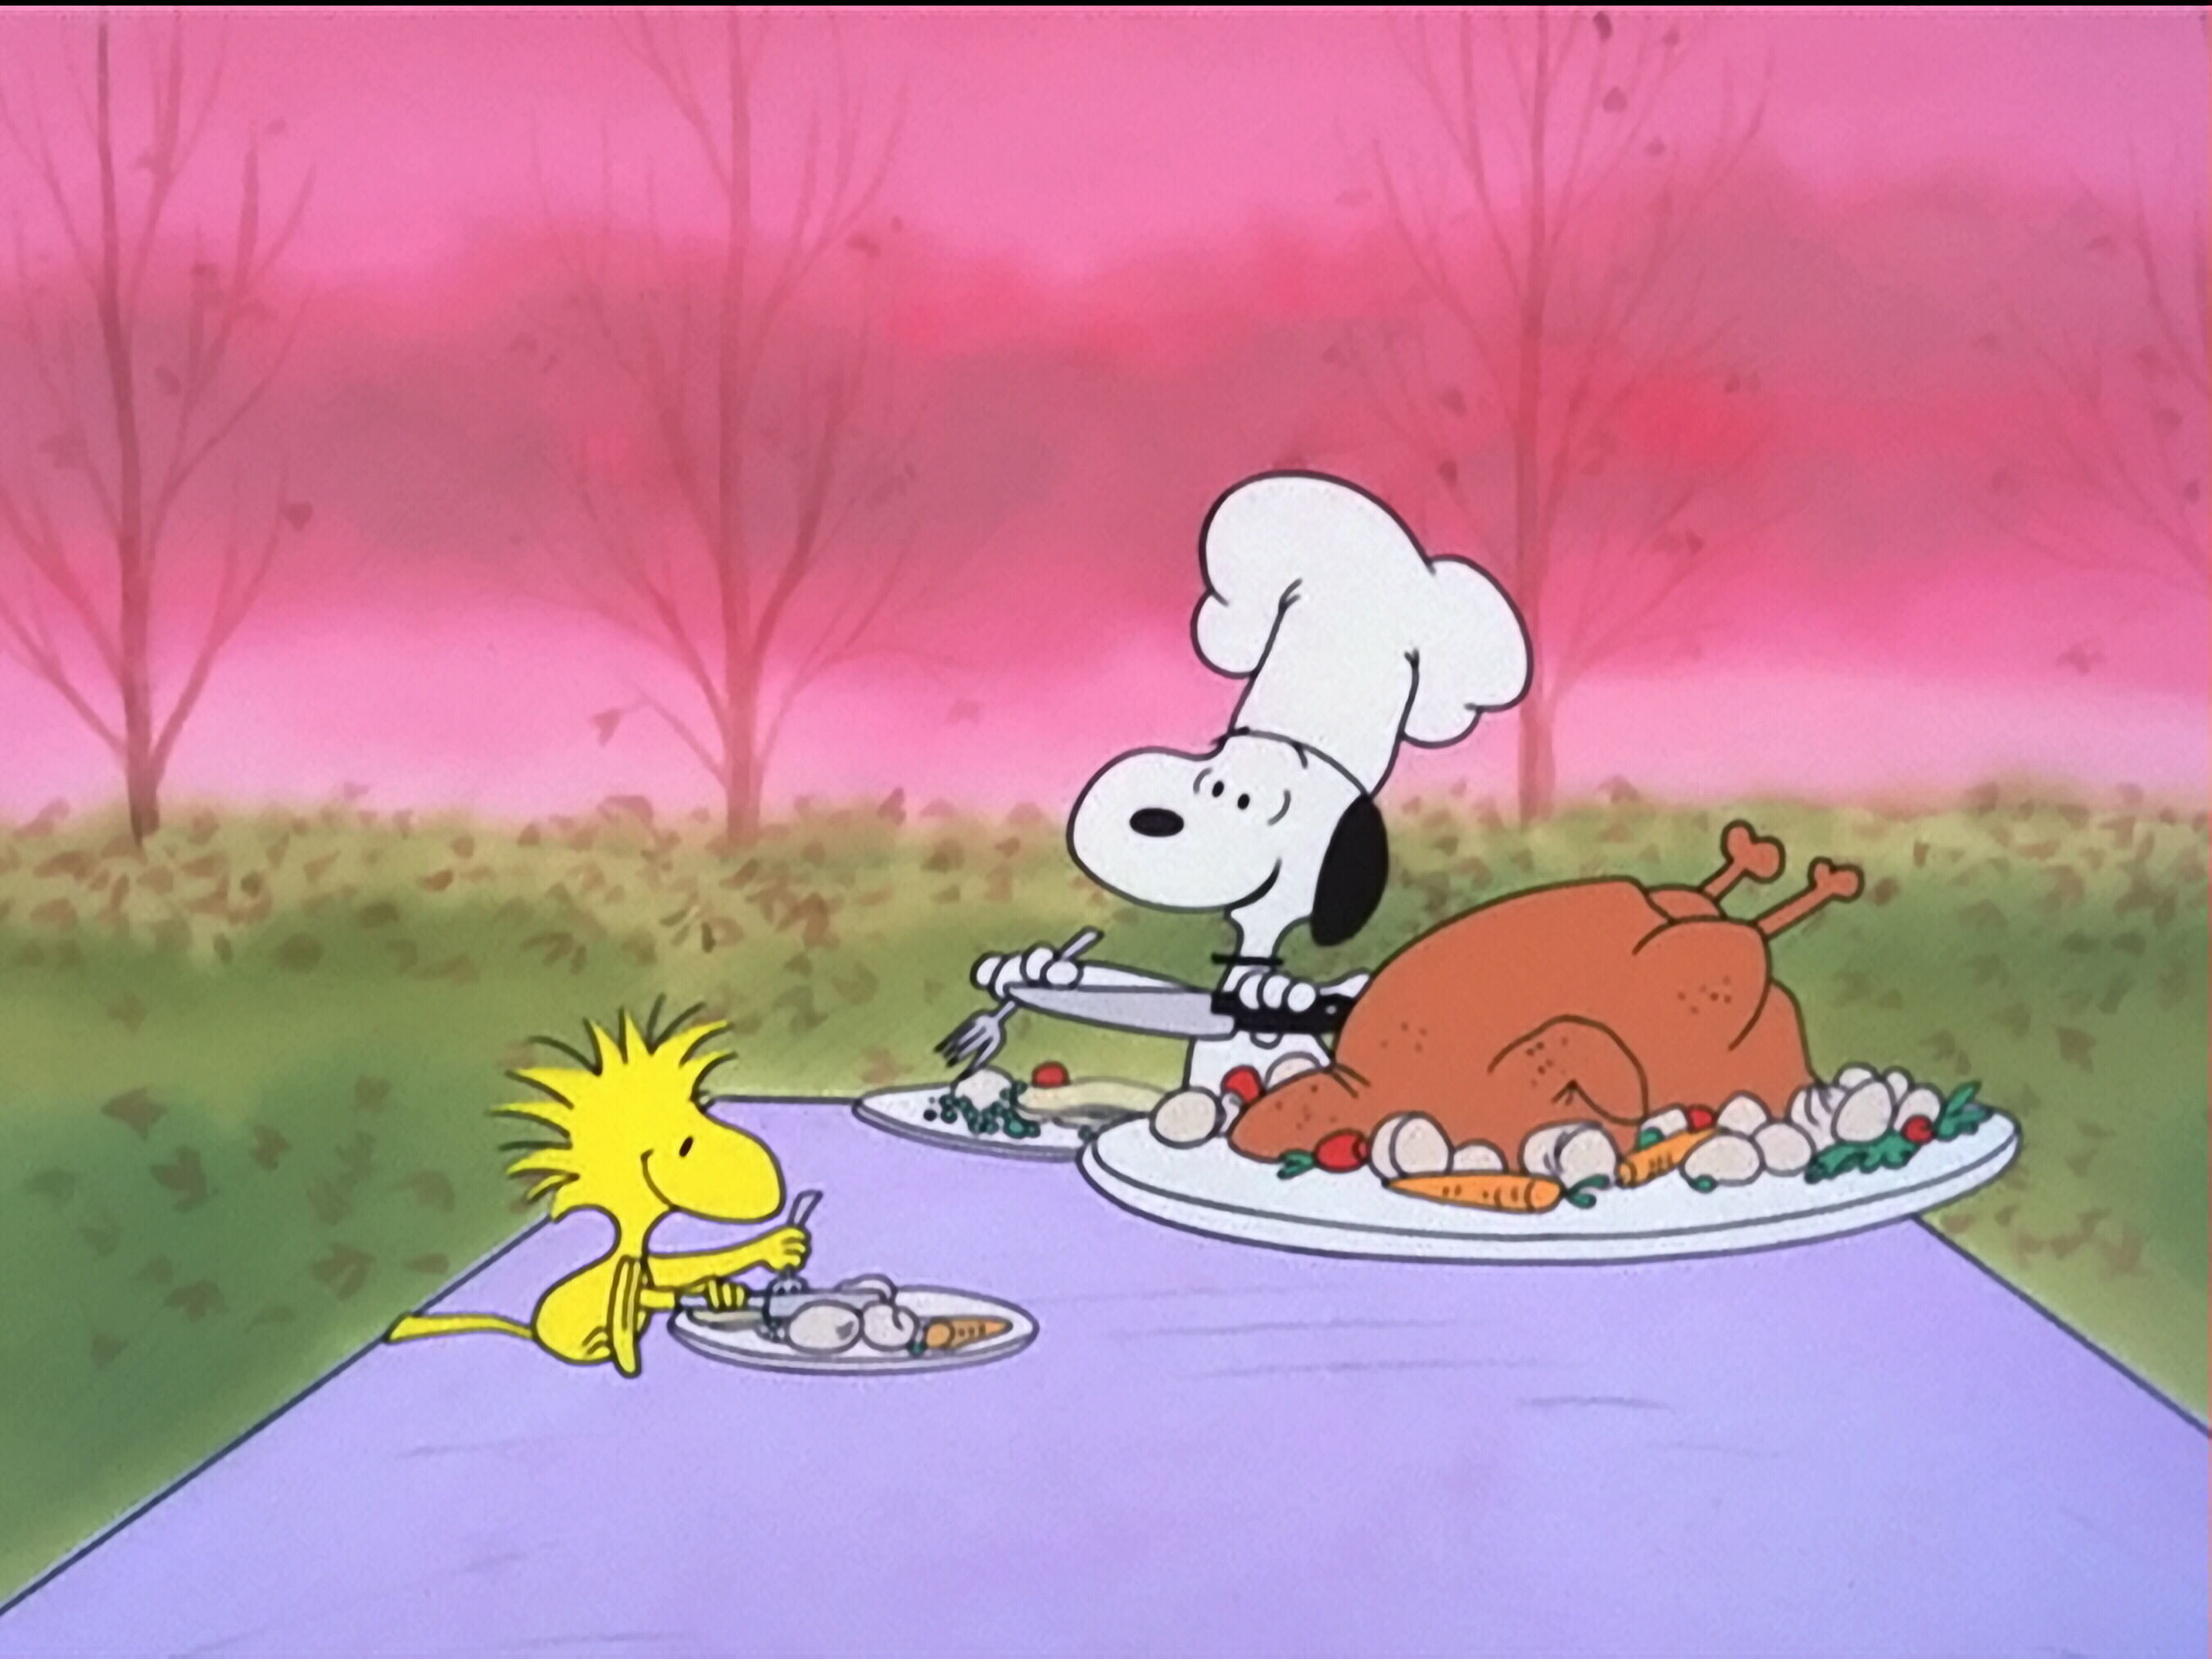 Peanuts Wallpaper Fall Snoopy And Woodstock Thanksgiving Wallpaper 56 Images